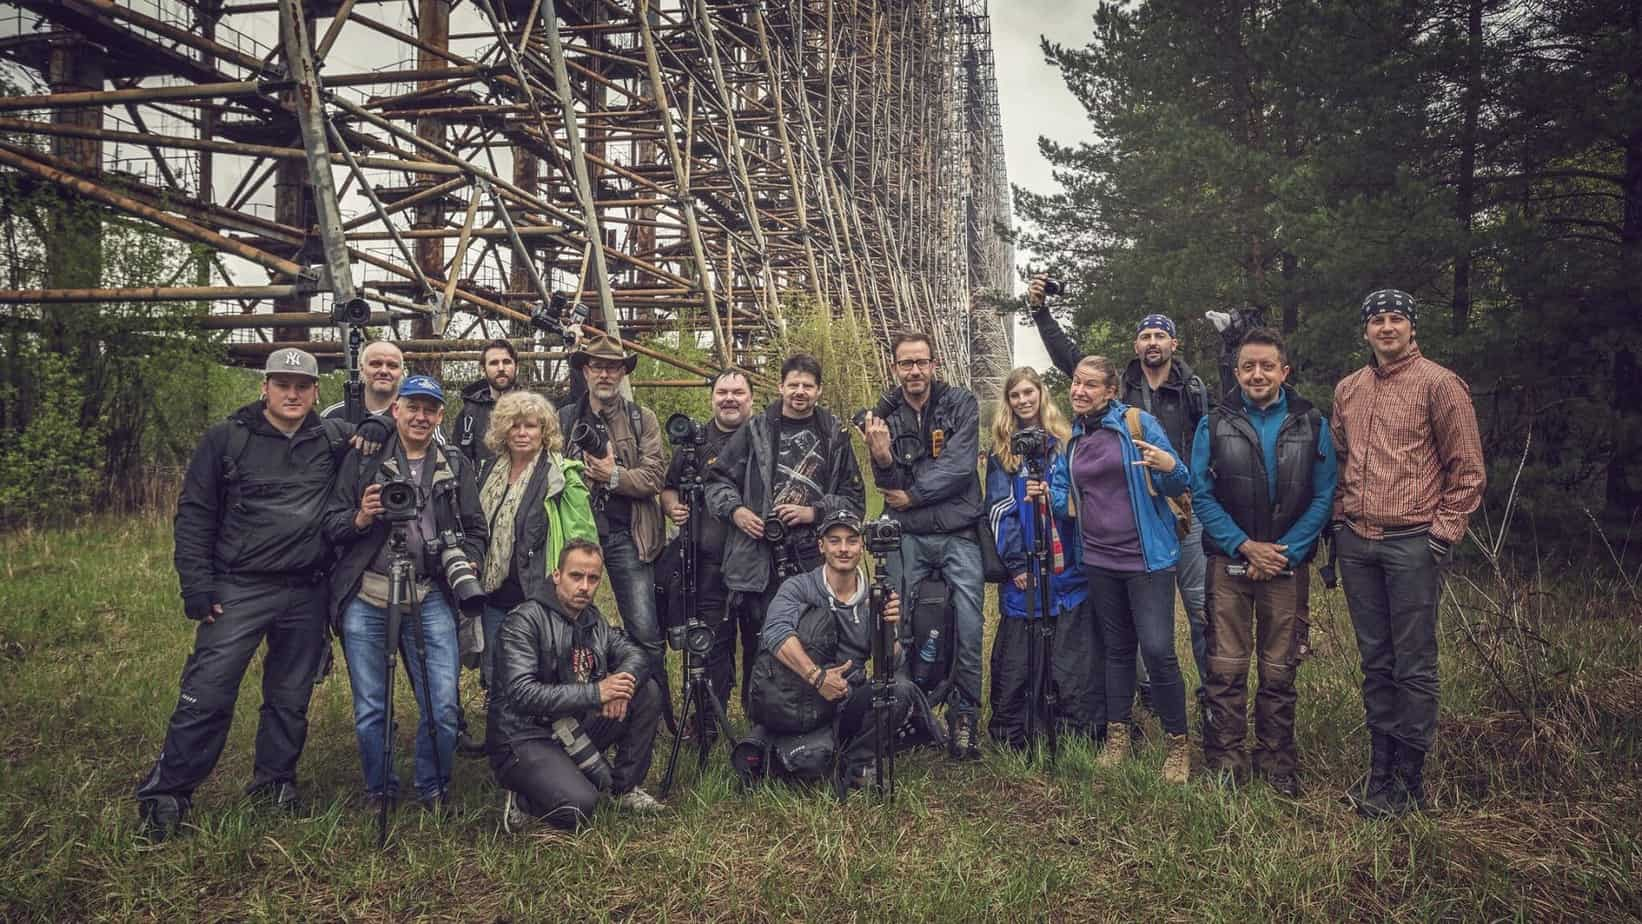 Fotoexpedition Tschernobyl und Pripyat